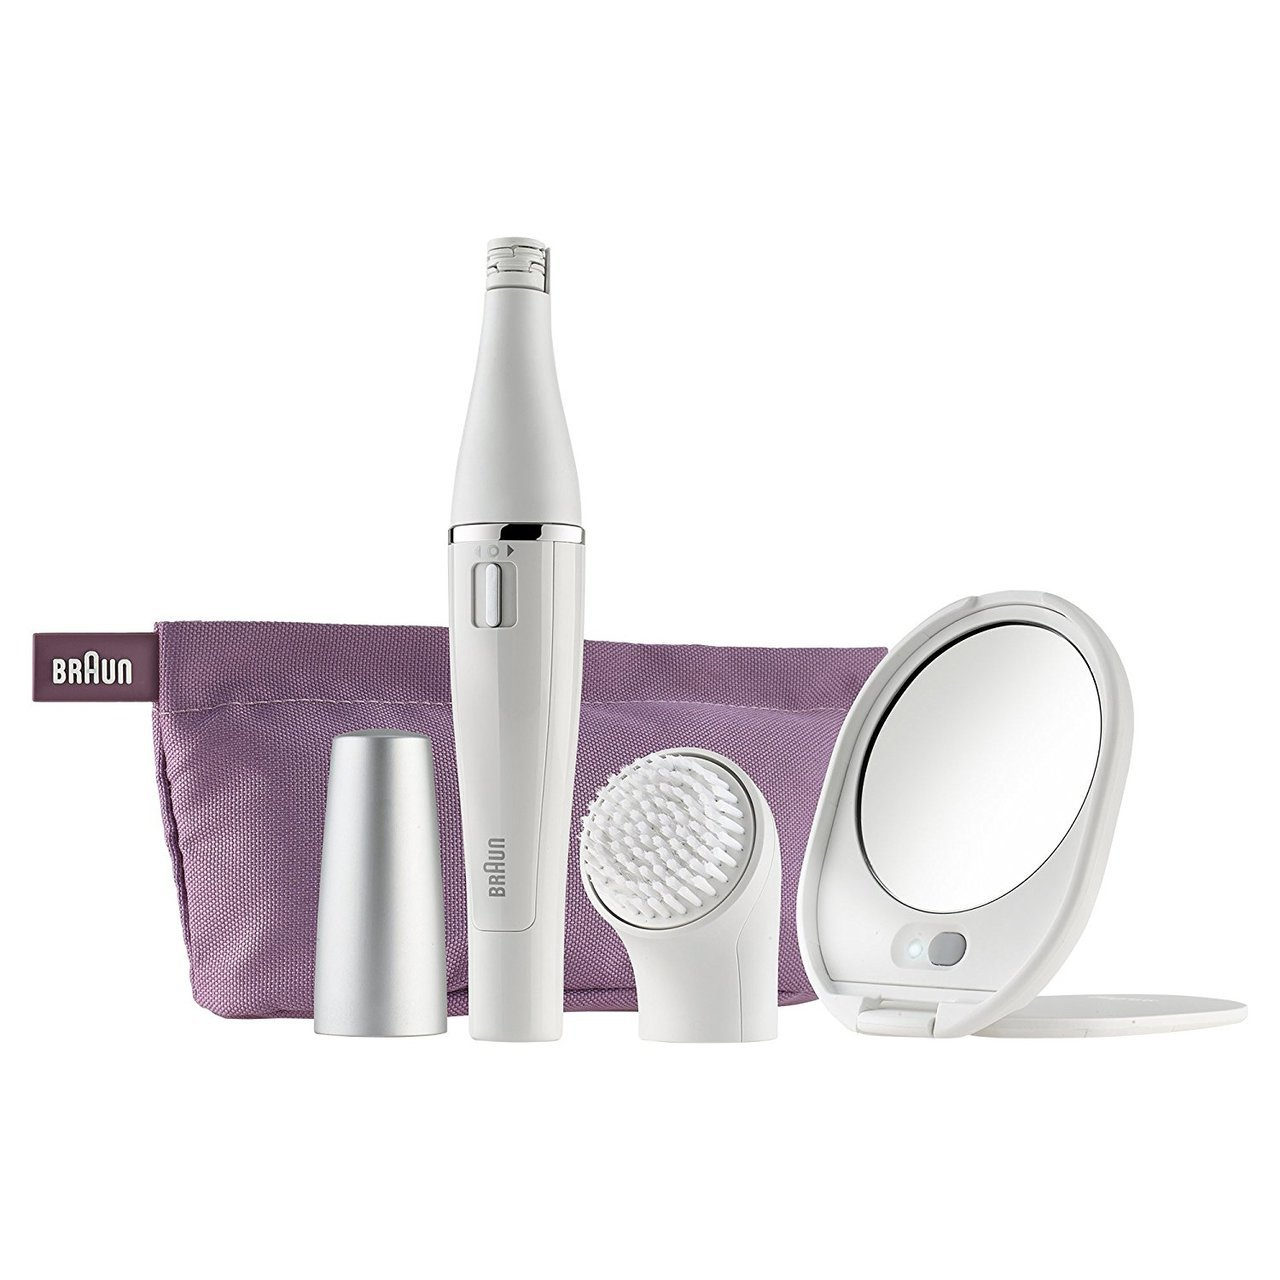 BRAUN FACE EPILATOR 830 +MIRROR +POUCH (NEW)